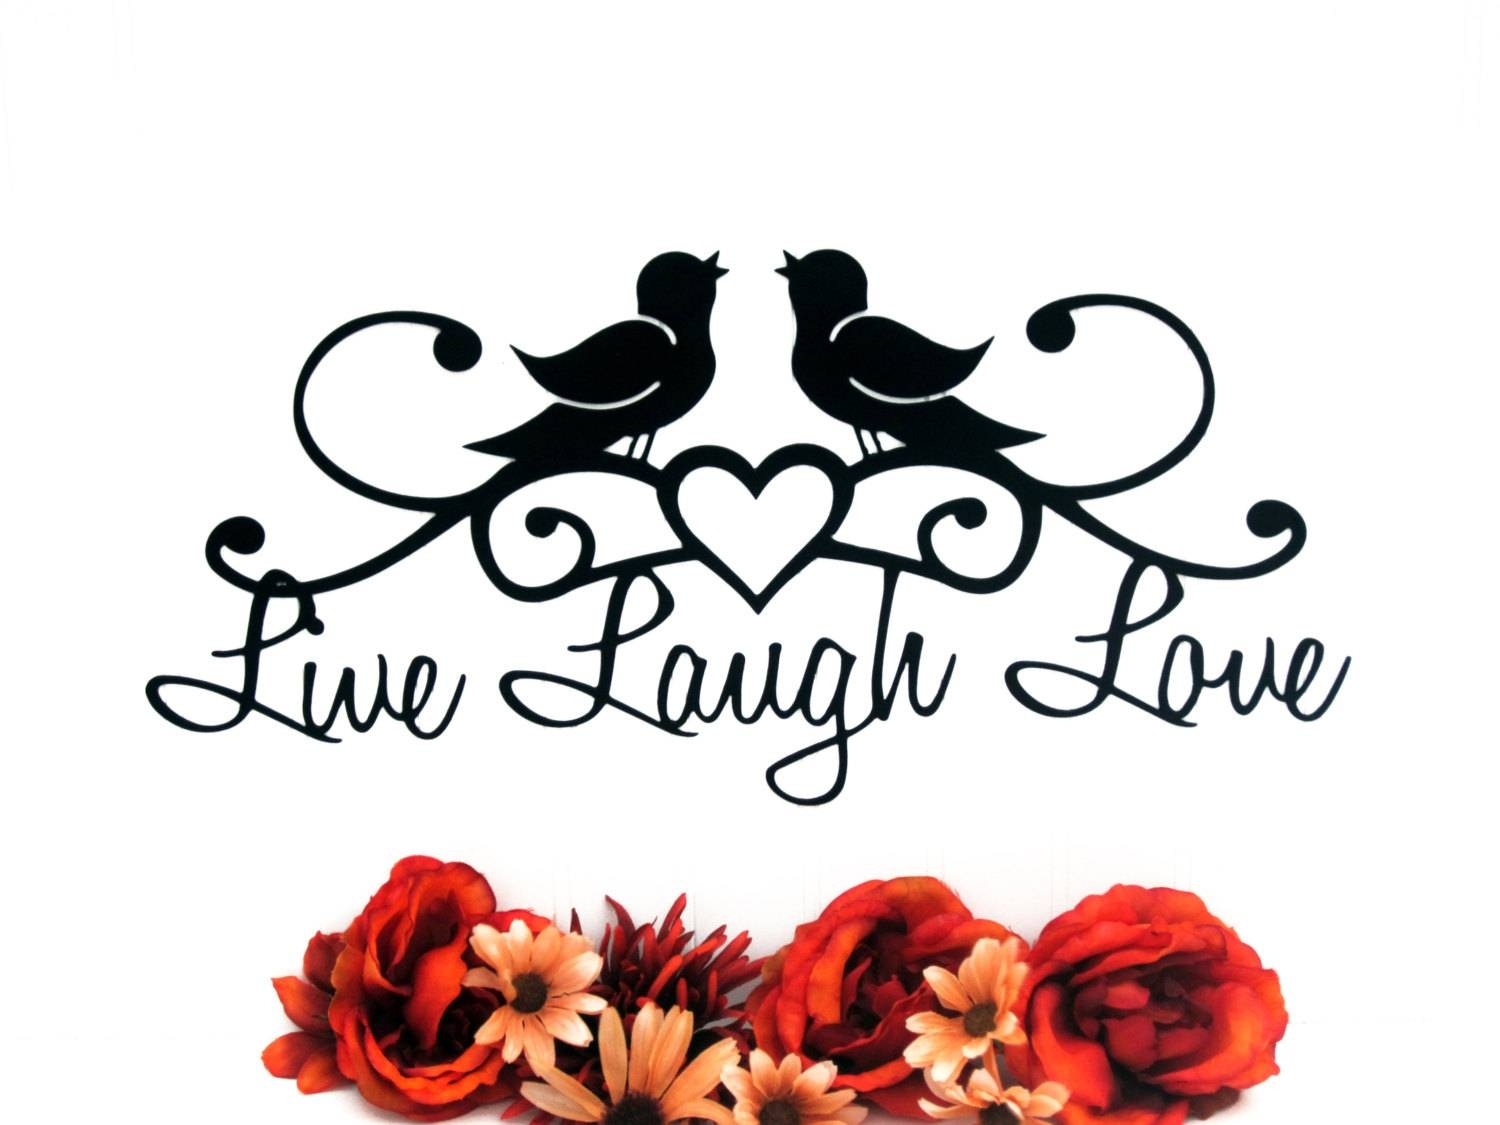 Birds Live Laugh Love Metal Wall Art Patio Decor With Regard To Most Recent Live Laugh Love Wall Art Metal (View 5 of 25)